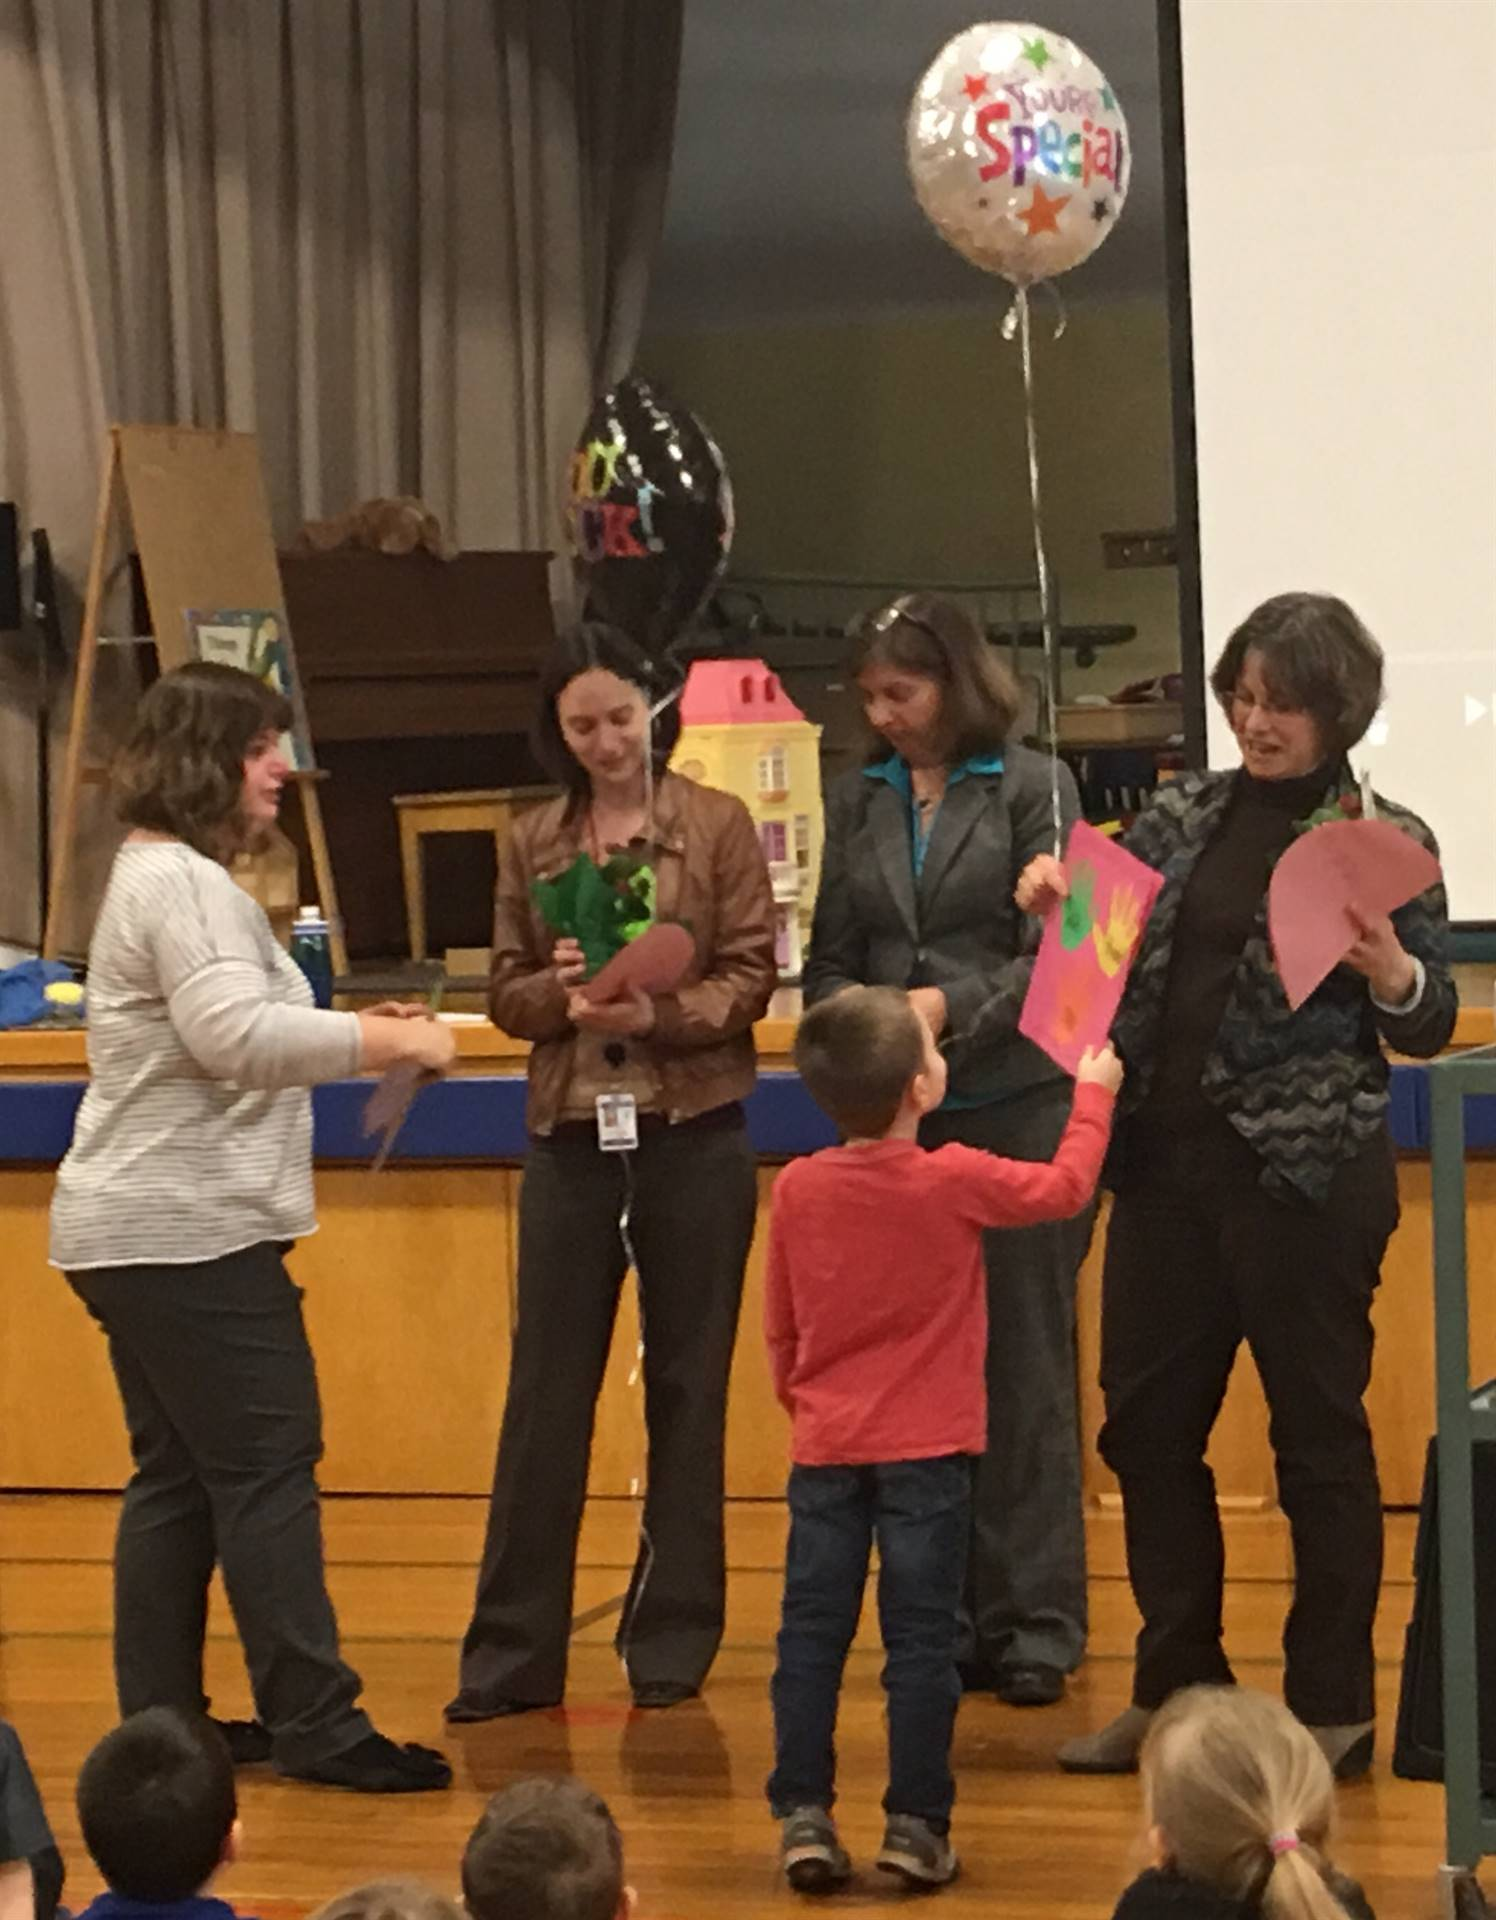 students and staff present cards and gifts to thank the Counselor team!